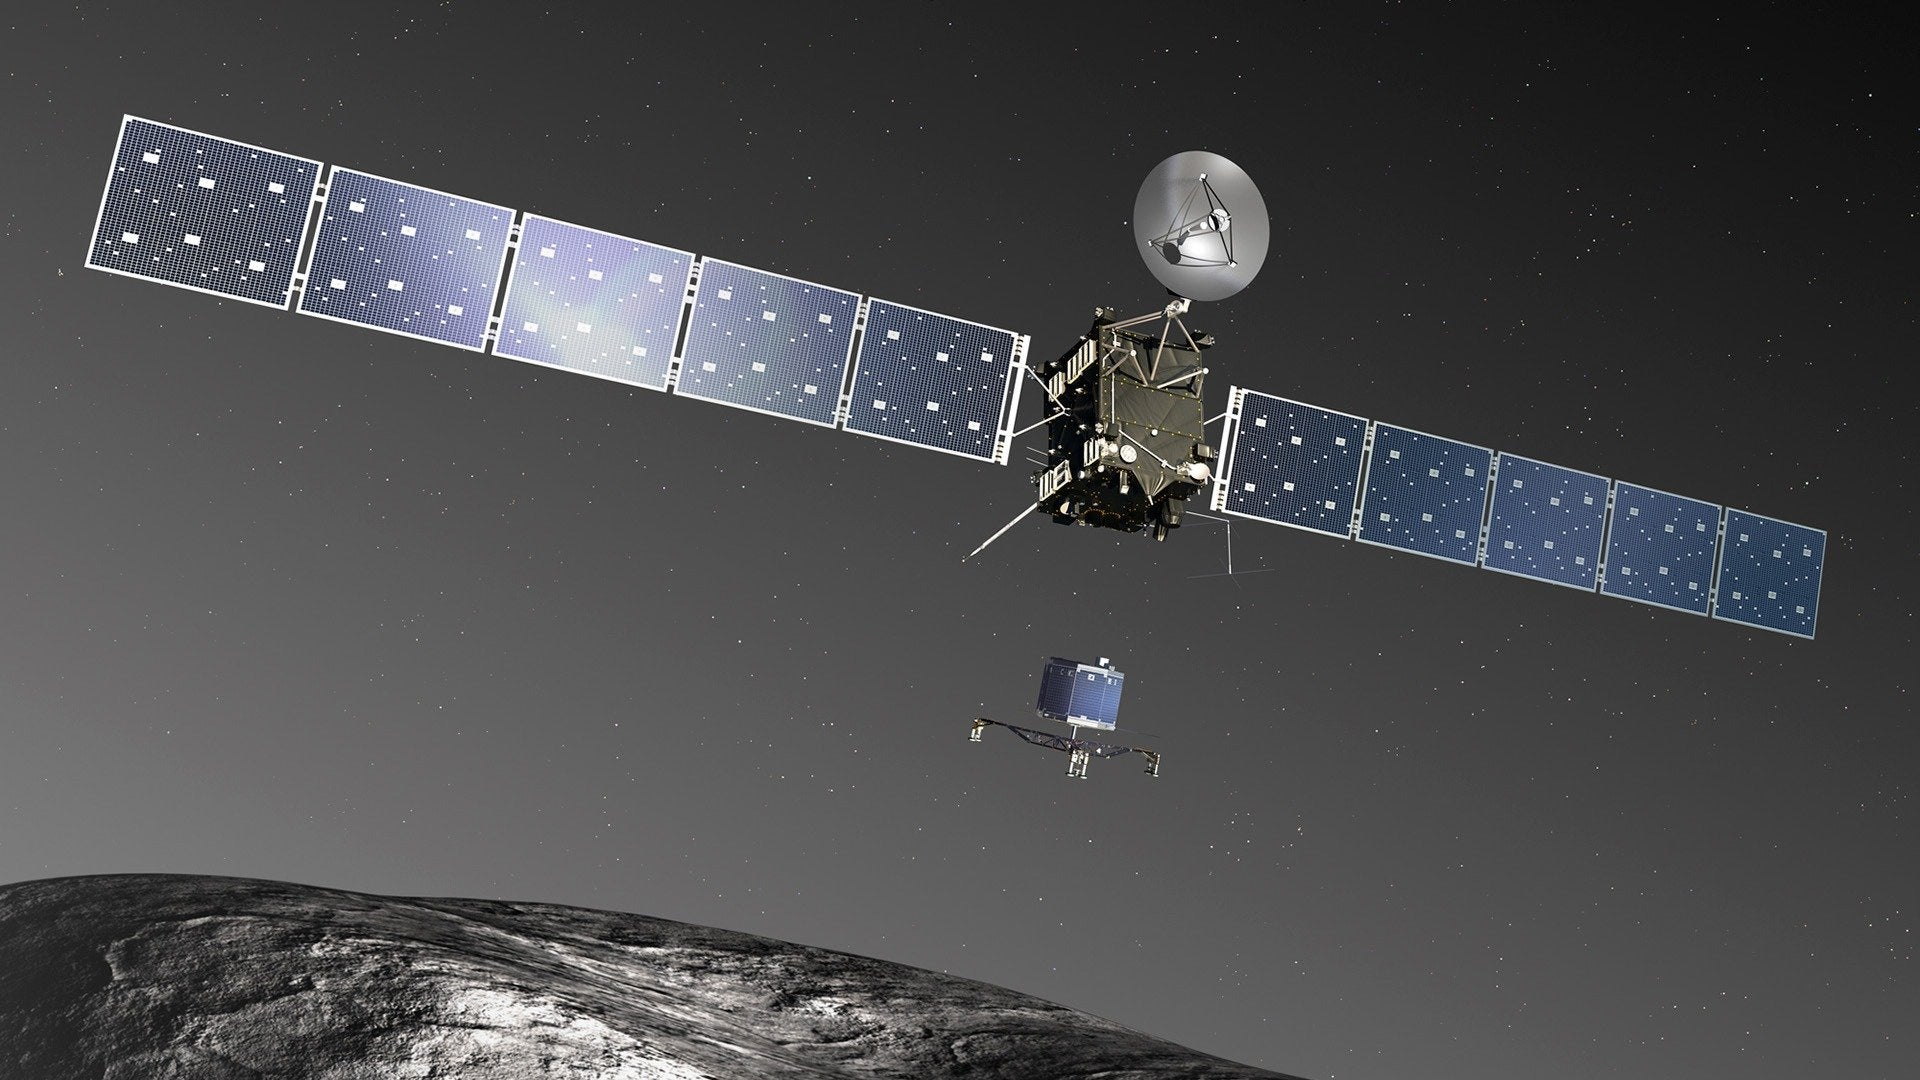 Landing on a Comet: Rosetta Mission